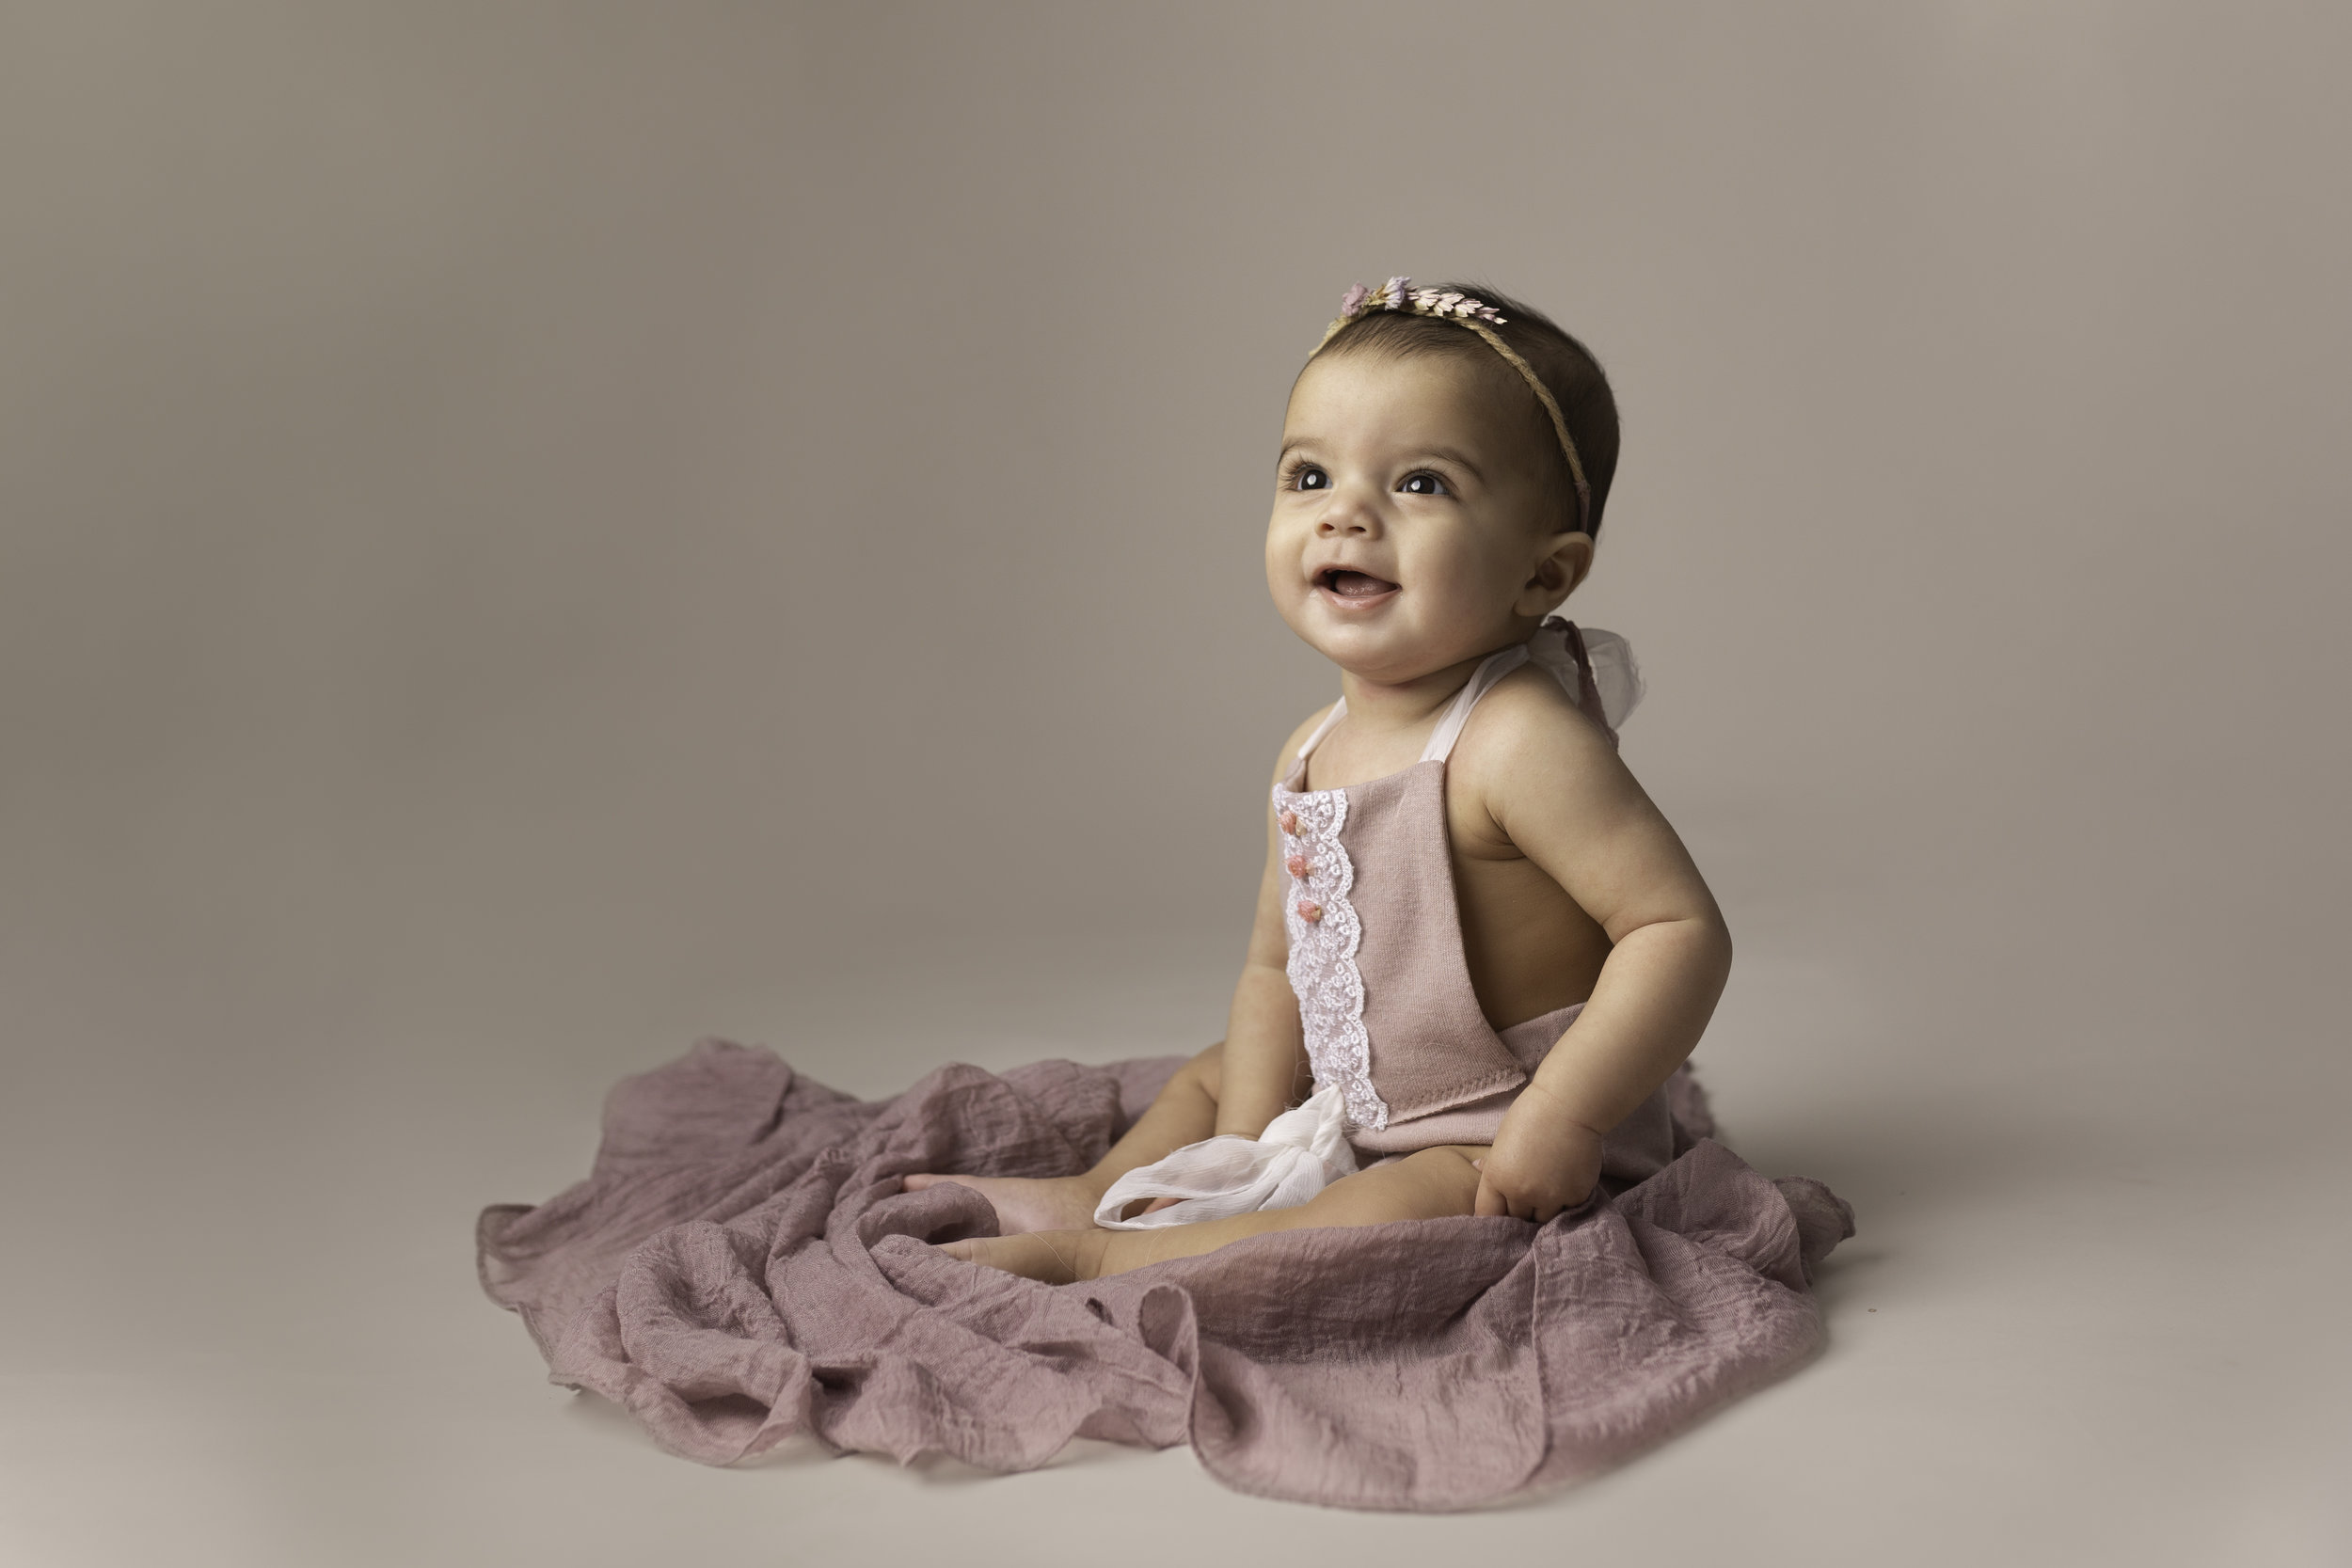 Lea-cooper-photography-childrens-photographer-portrait-session-sitter-session-6-months-old-photos-willenhall-wolverahmpton-birmingham-west-midlands-uk-8.jpg